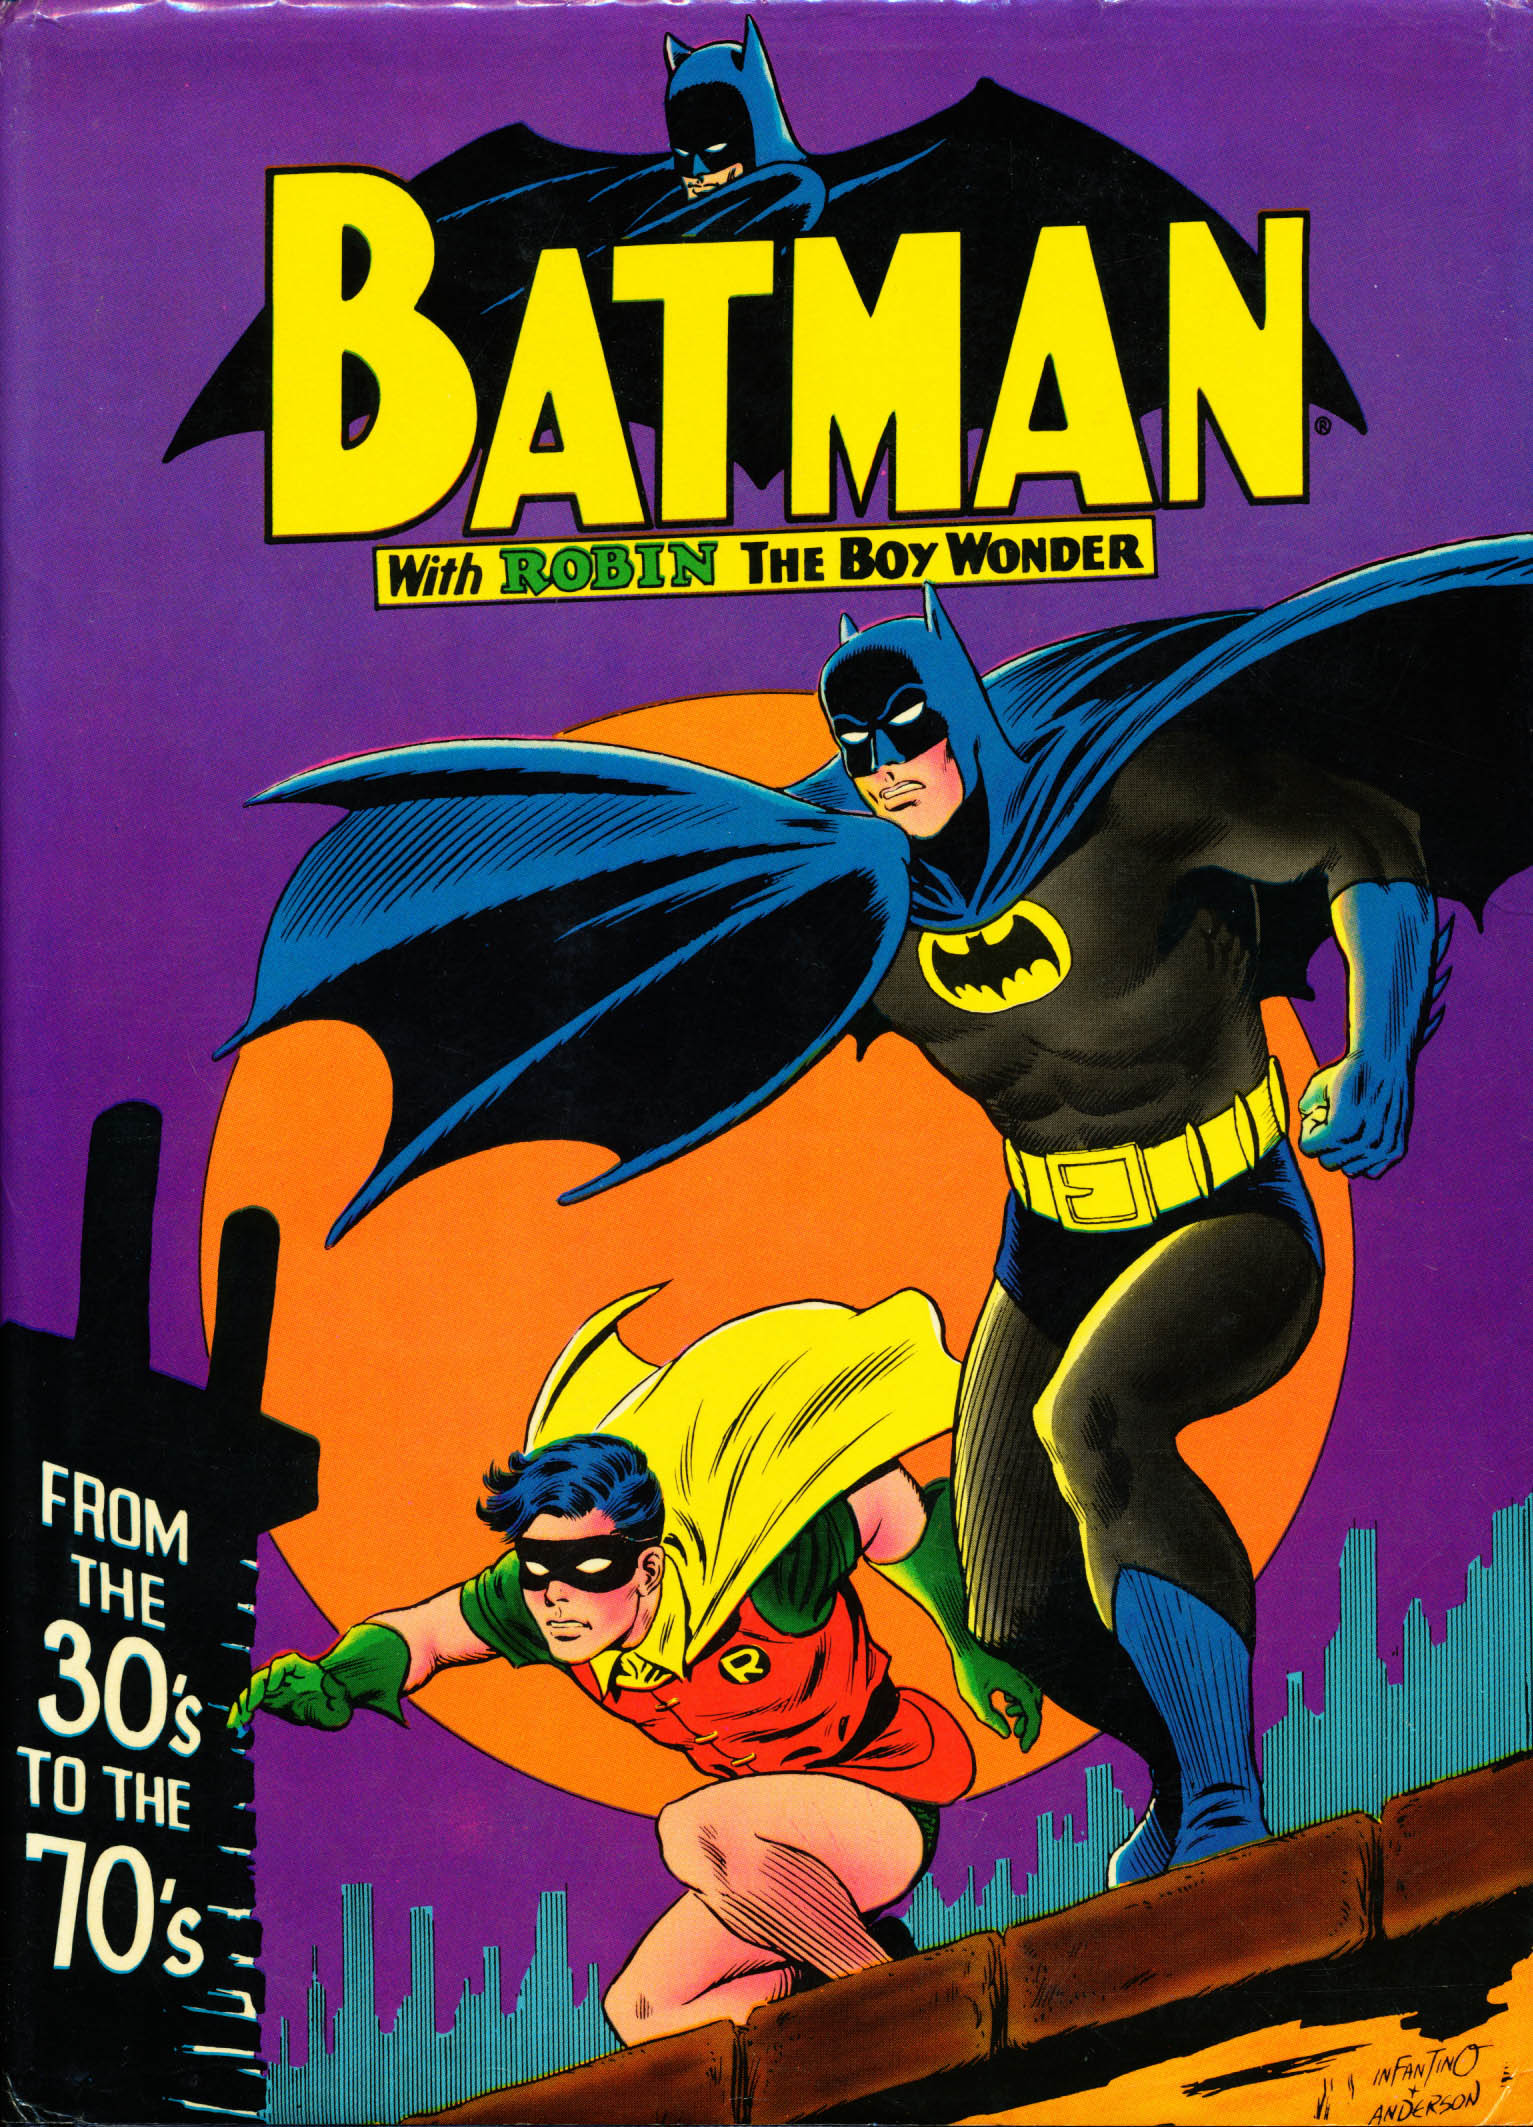 Comic Book Cover Pictures : My favorite golden age reprint book the of